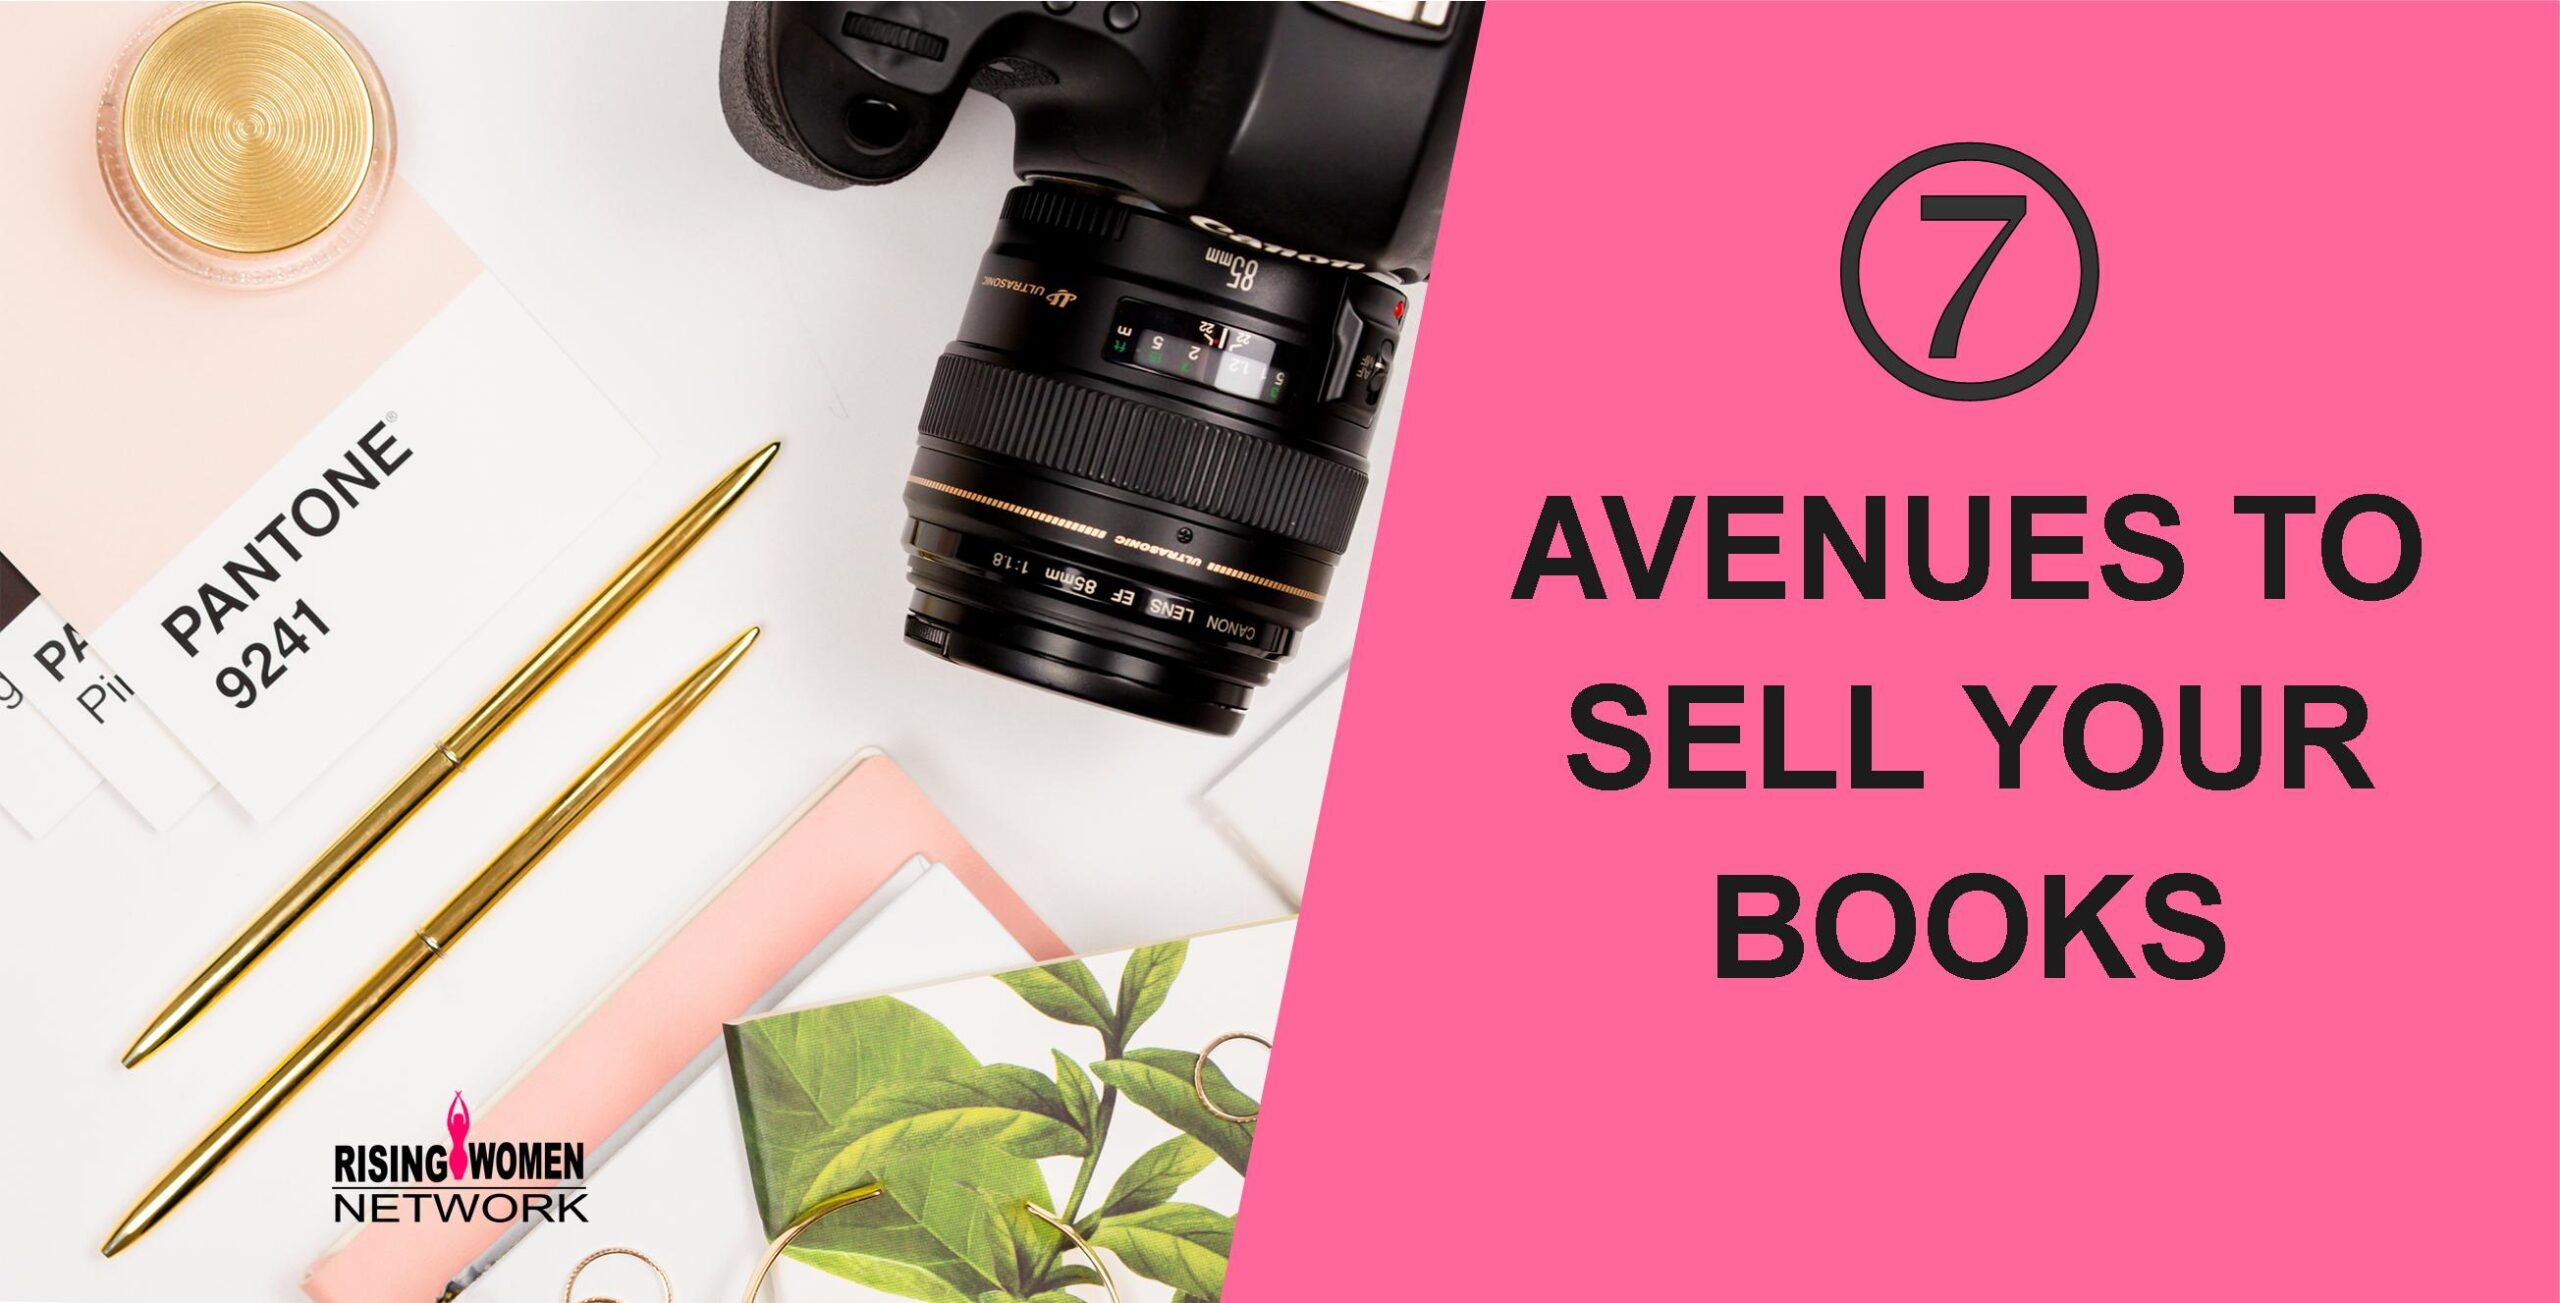 The main thing about selling your books is to be proactive rather than sitting around waiting for something to happen. This is a sure fire way to have nothing happen at all.